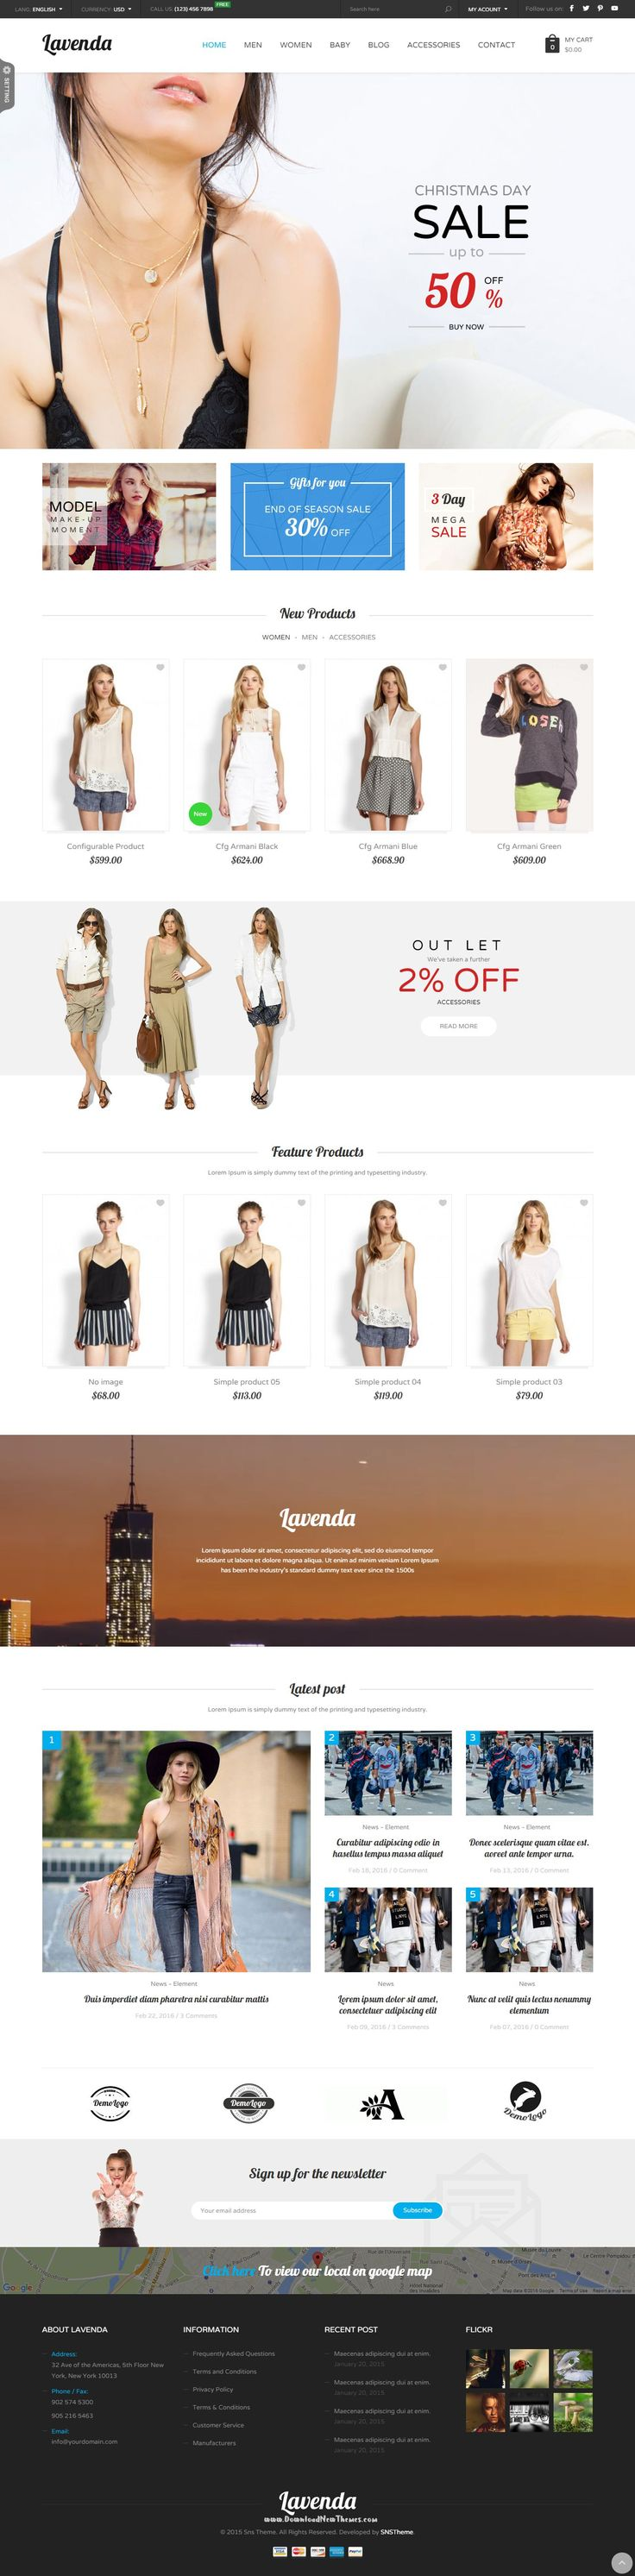 SNS Lavenda Magento Theme has 8+ homepage layout and with powerful features, easy to customize, power admin, cool effect. We hope you will have a great experience #eCommerce #magentotheme #fashion